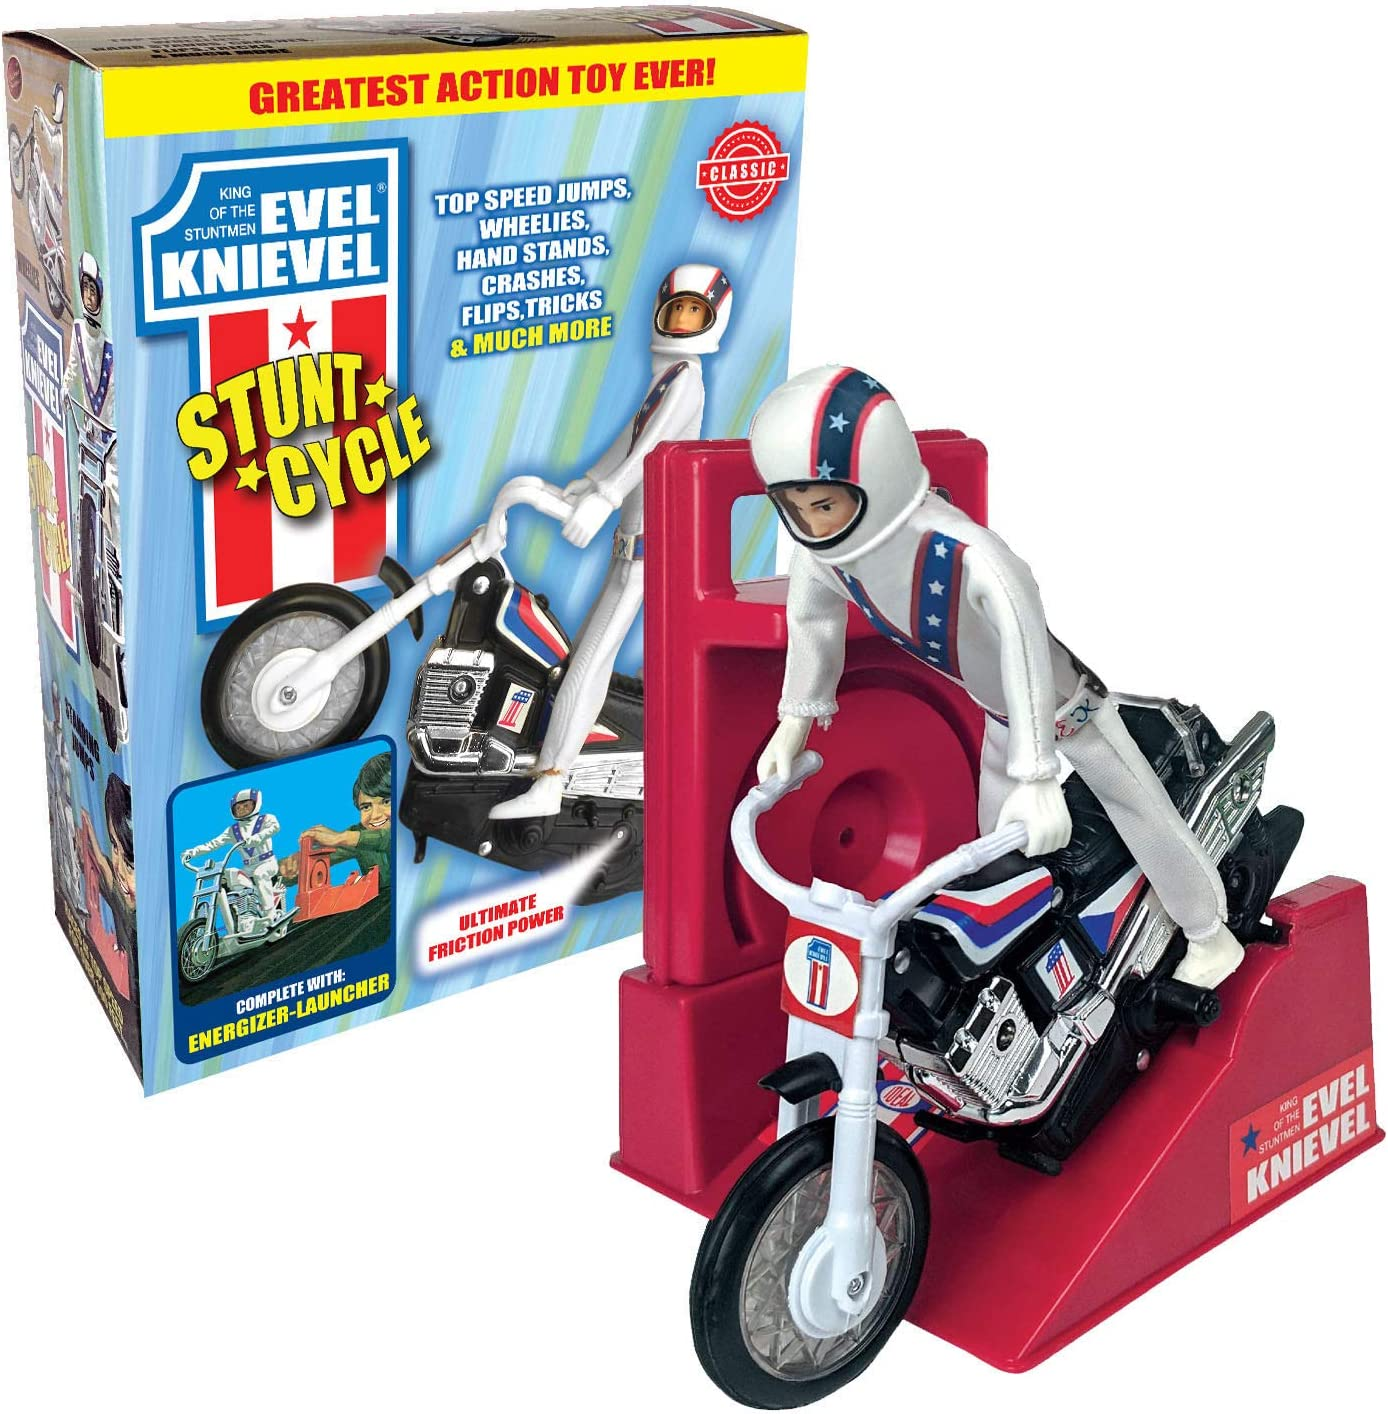 Image result for evel knievel wind up toy